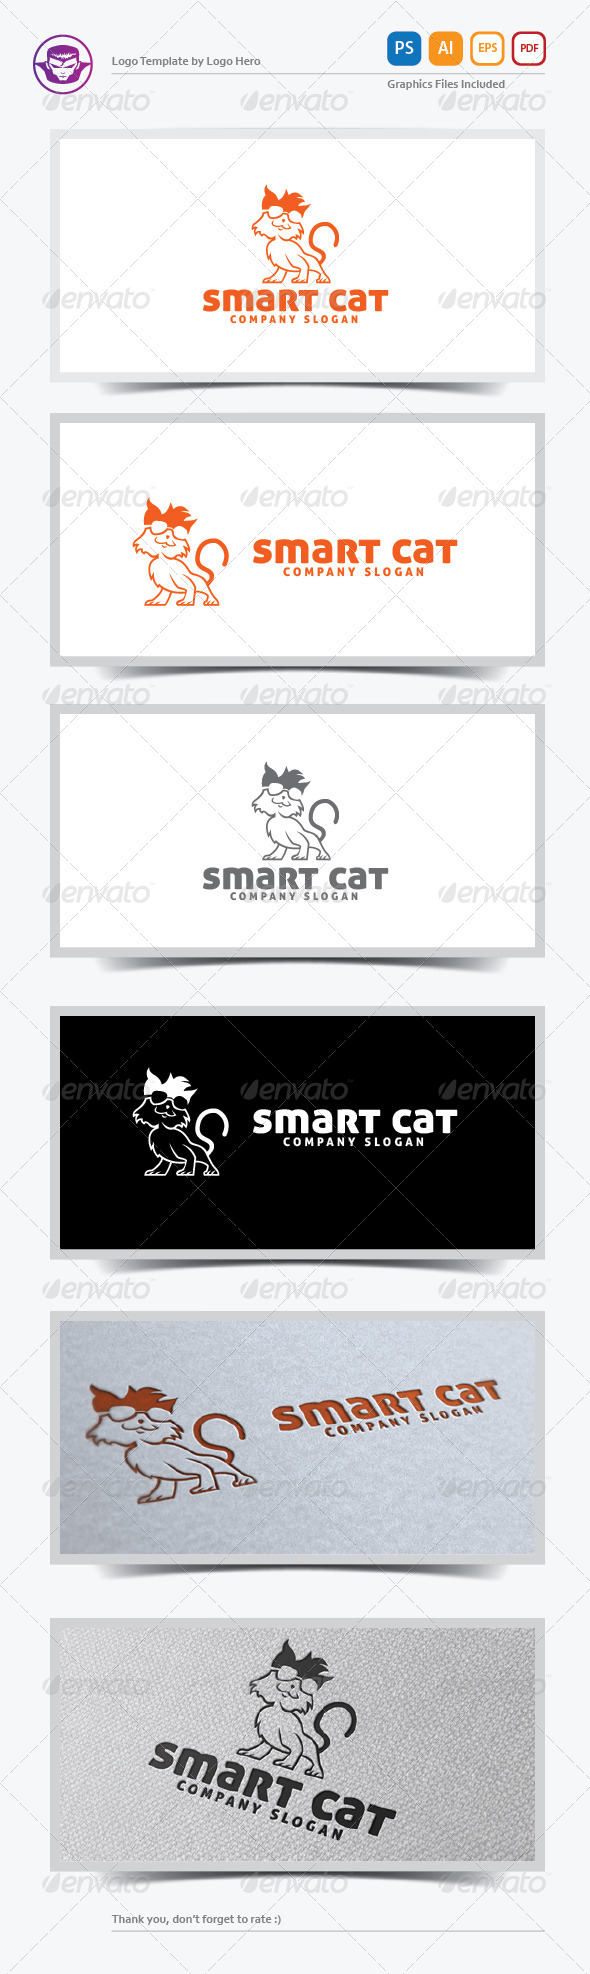 GraphicRiver Smart Cat Logo Template 5690983